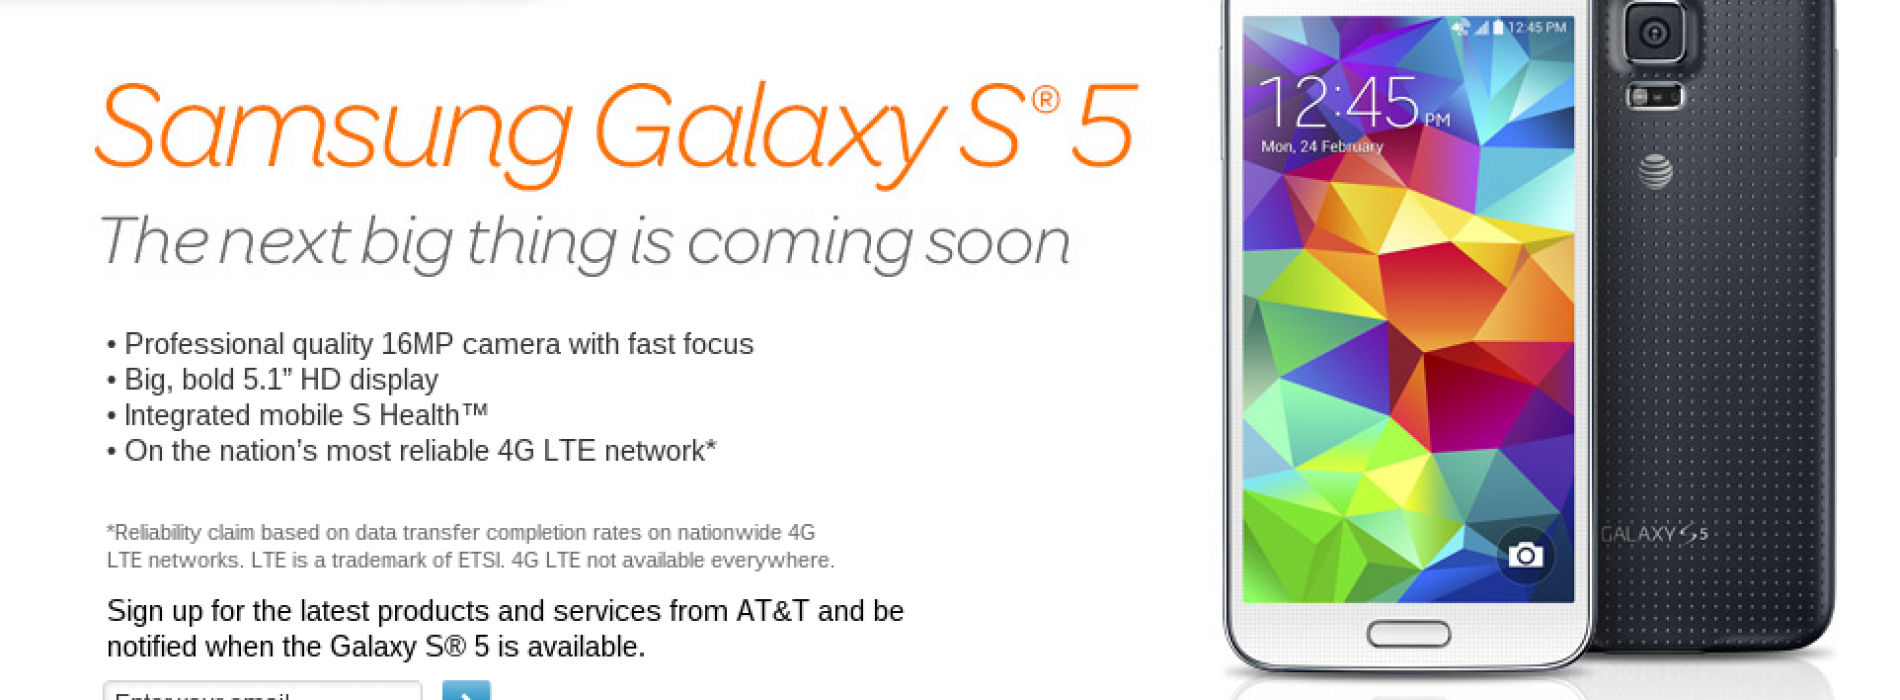 AT&T outlines Samsung Galaxy S5 pre-order details